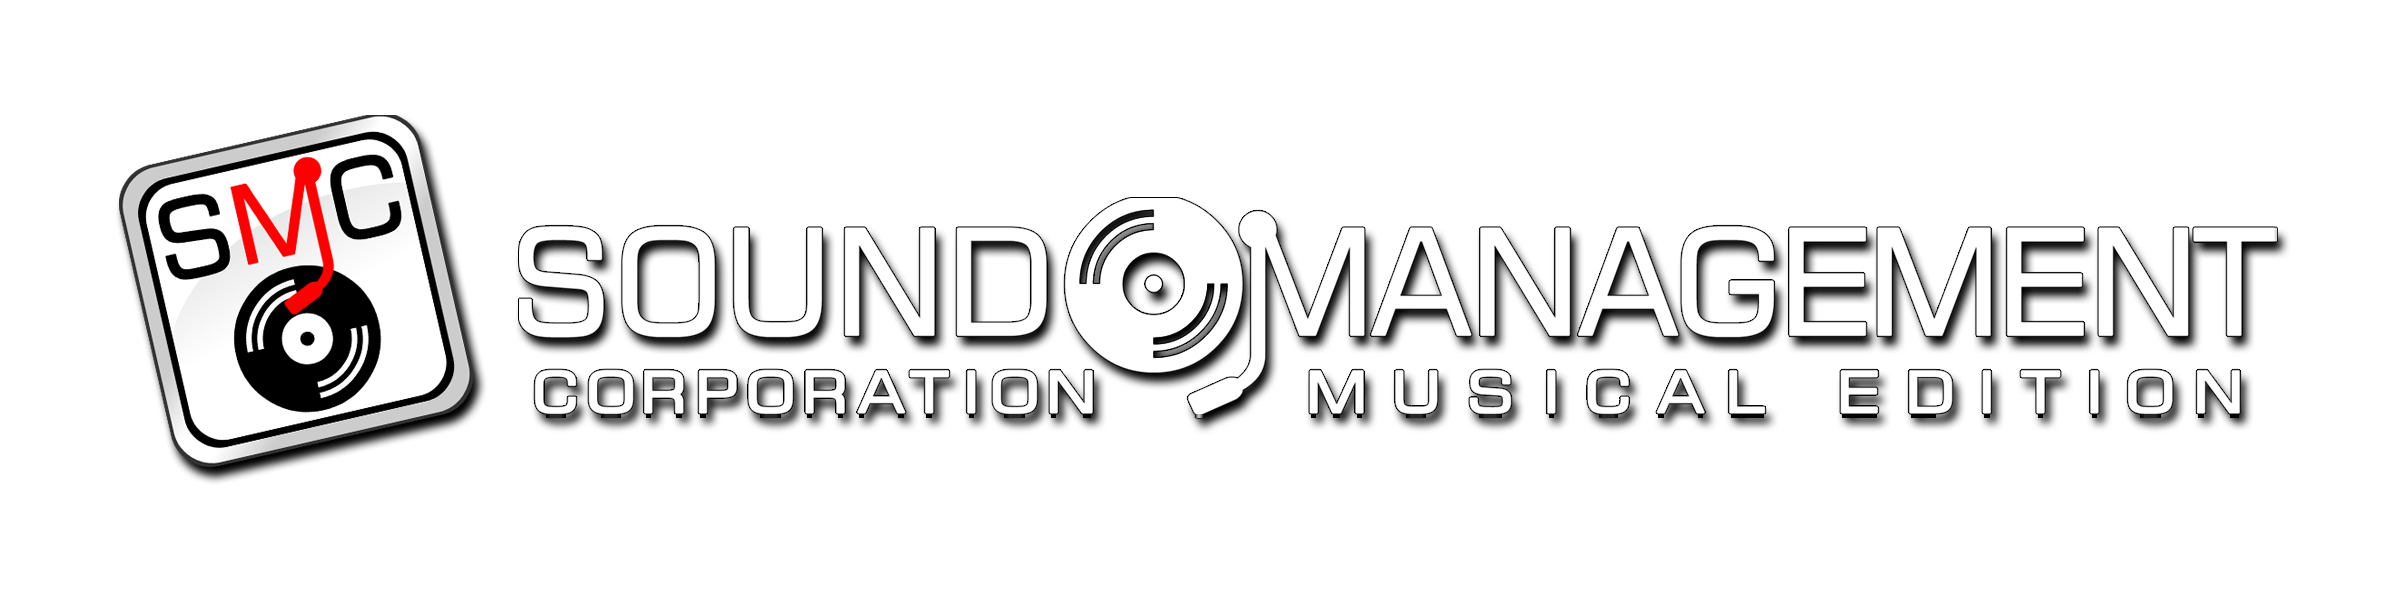 sound management corporation